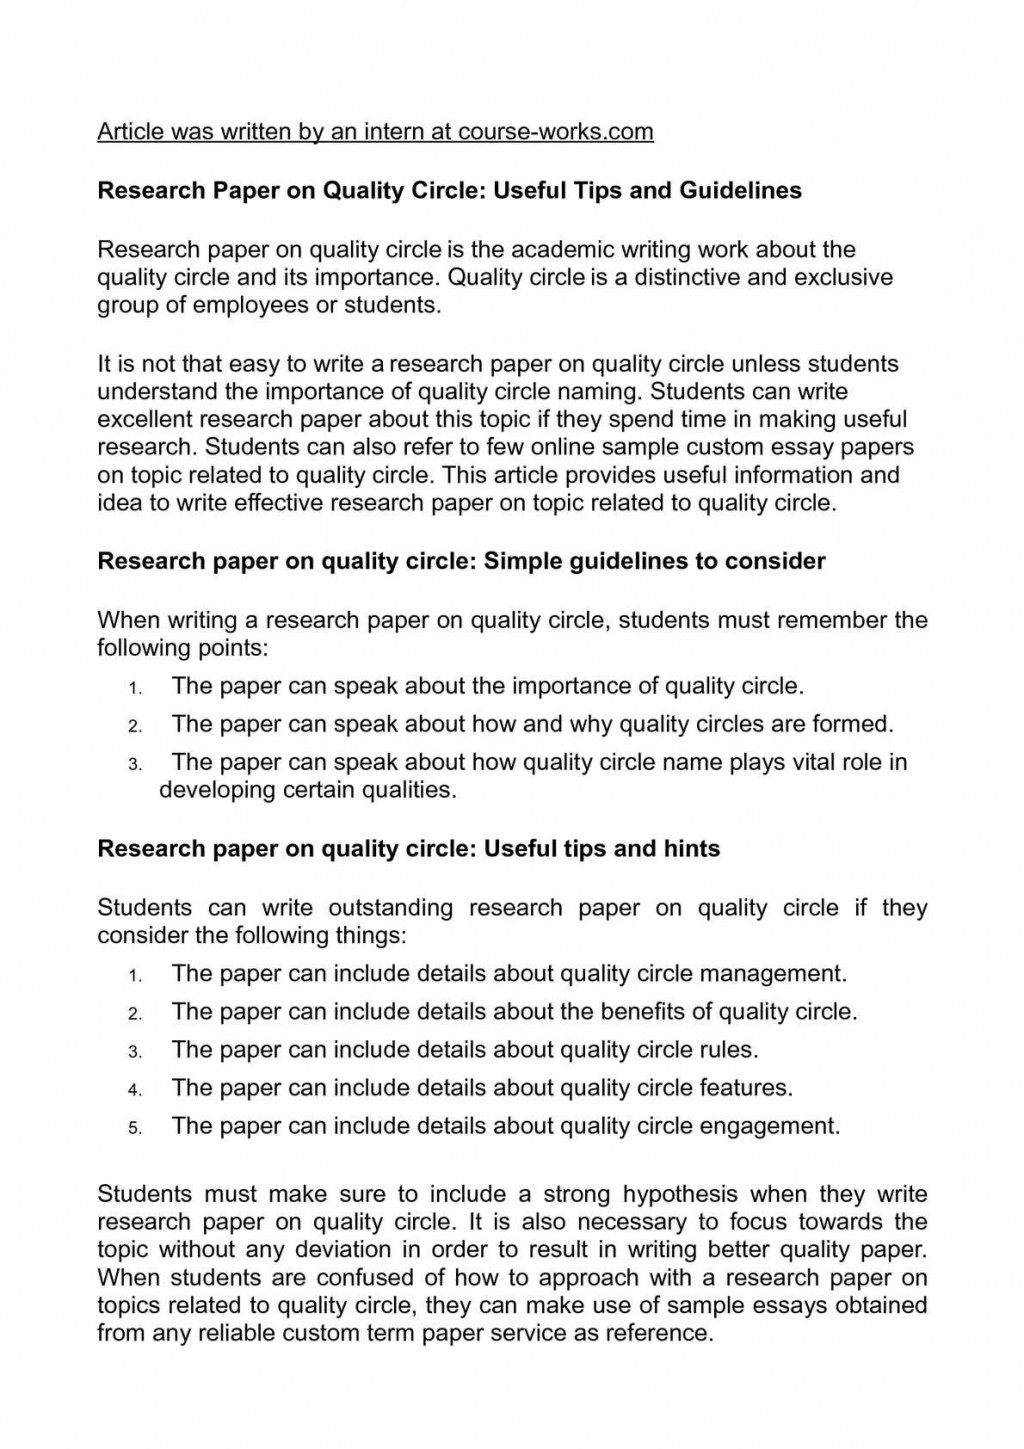 008 Easy Topics For Research Paper Awful A History Psychology Persuasive Large